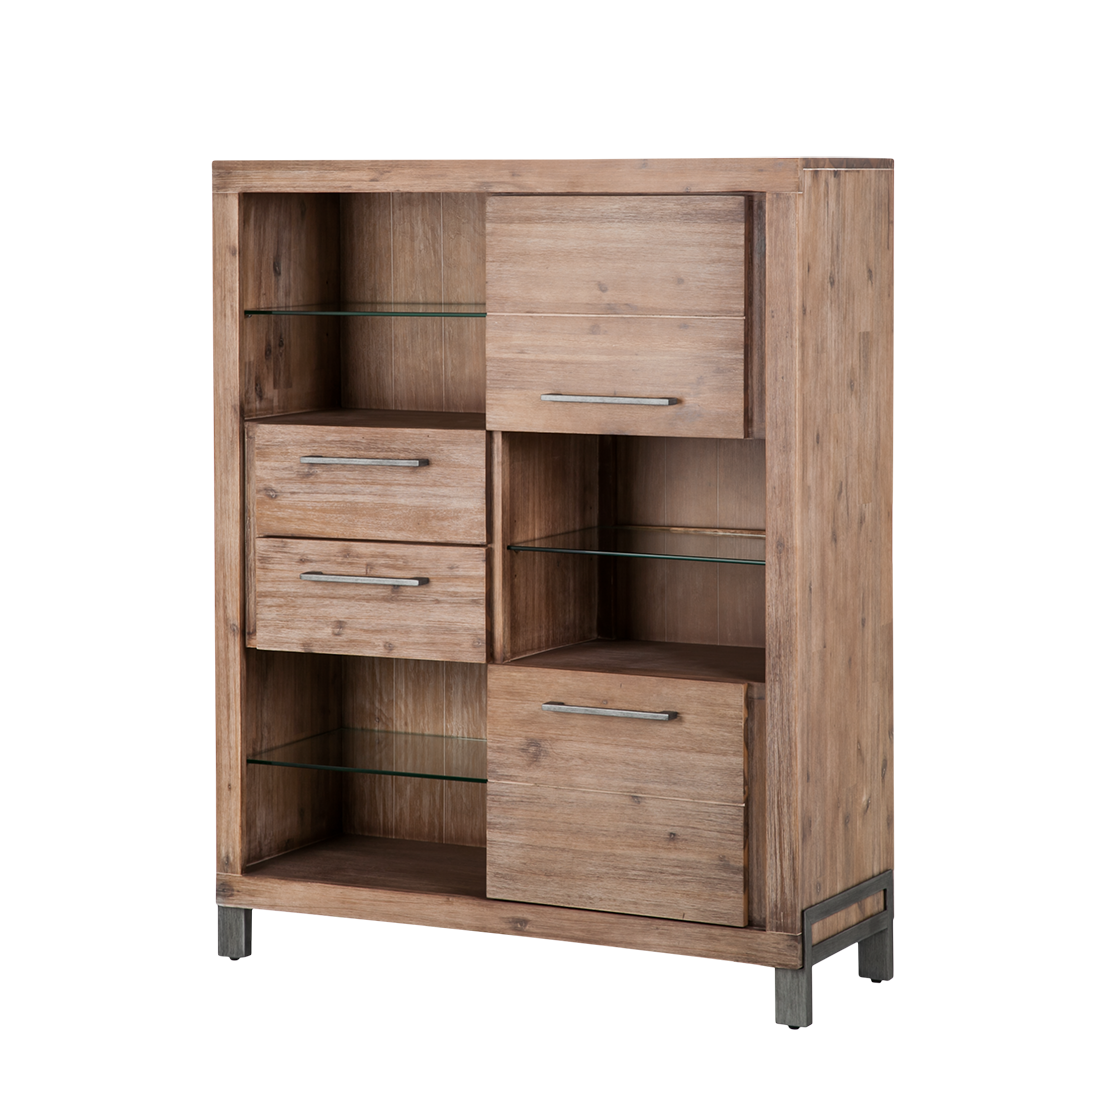 Highboard akazie massiv sideboard kommode anrichte for Sideboard kommode